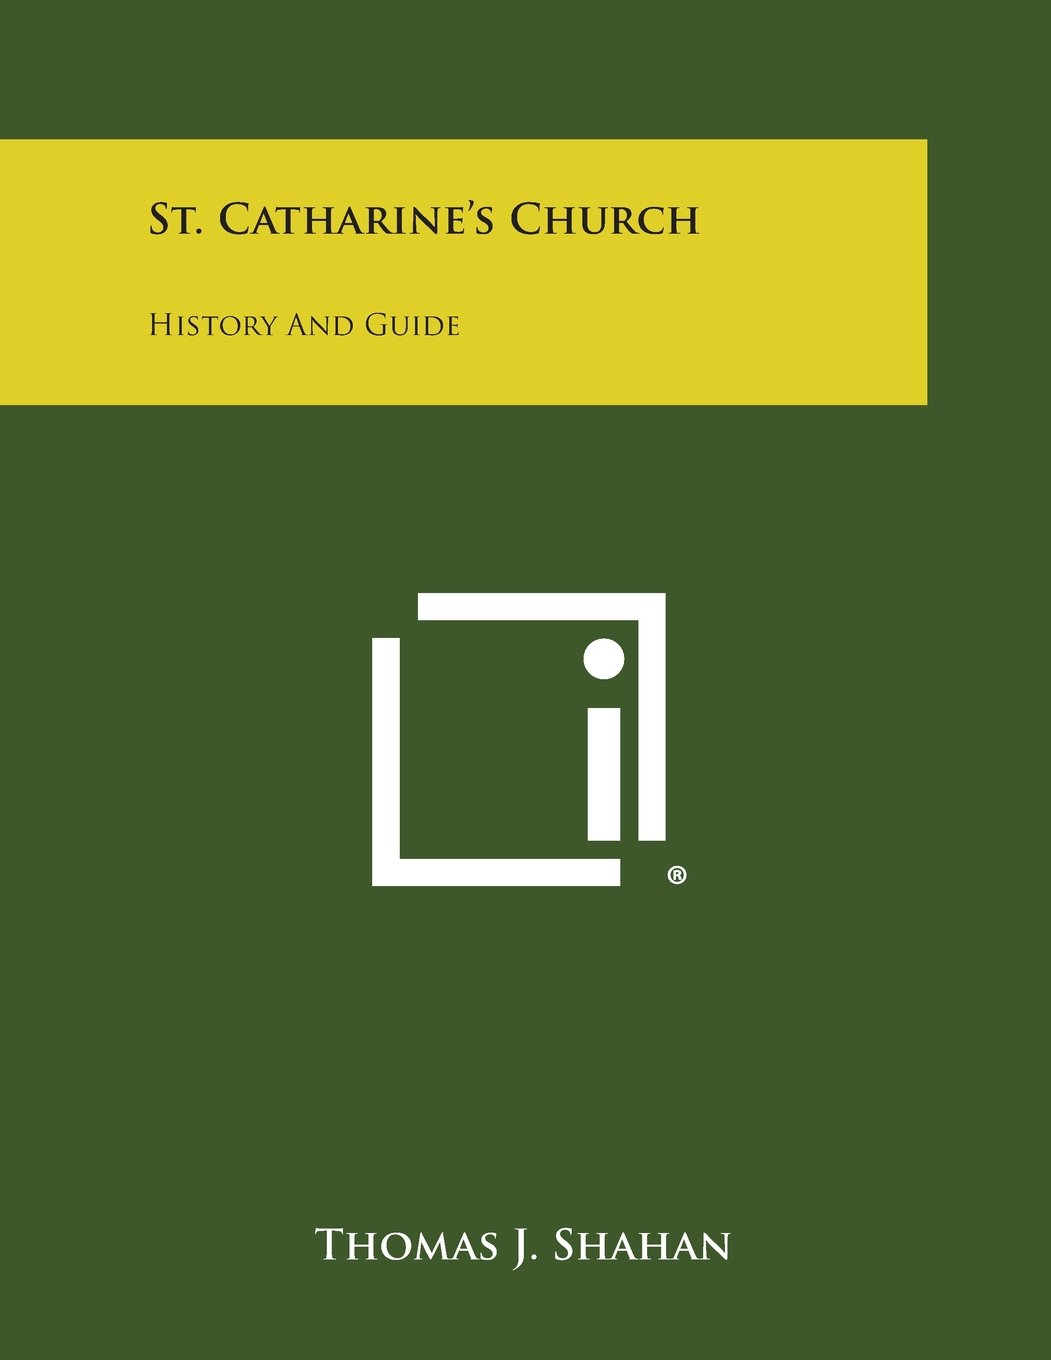 St. Catharine's Church: History and Guide ebook